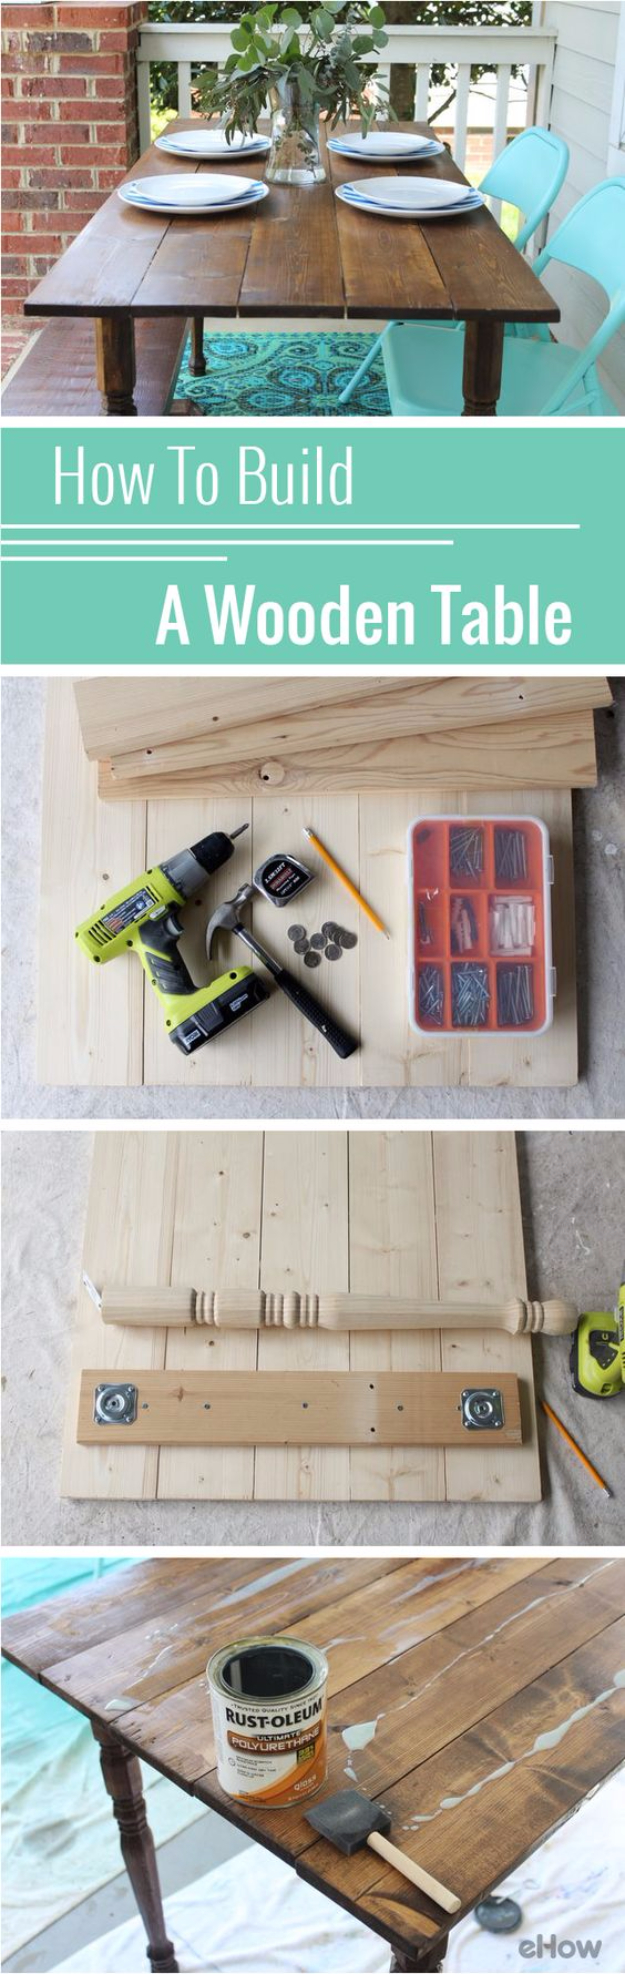 DIY Dining Room Table Projects - Wooden Dining Table Tutorial - Creative Do It Yourself Tables and Ideas You Can Make For Your Kitchen or Dining Area. Easy Step by Step Tutorials that Are Perfect For Those On A Budget #diyfurniture #diningroom